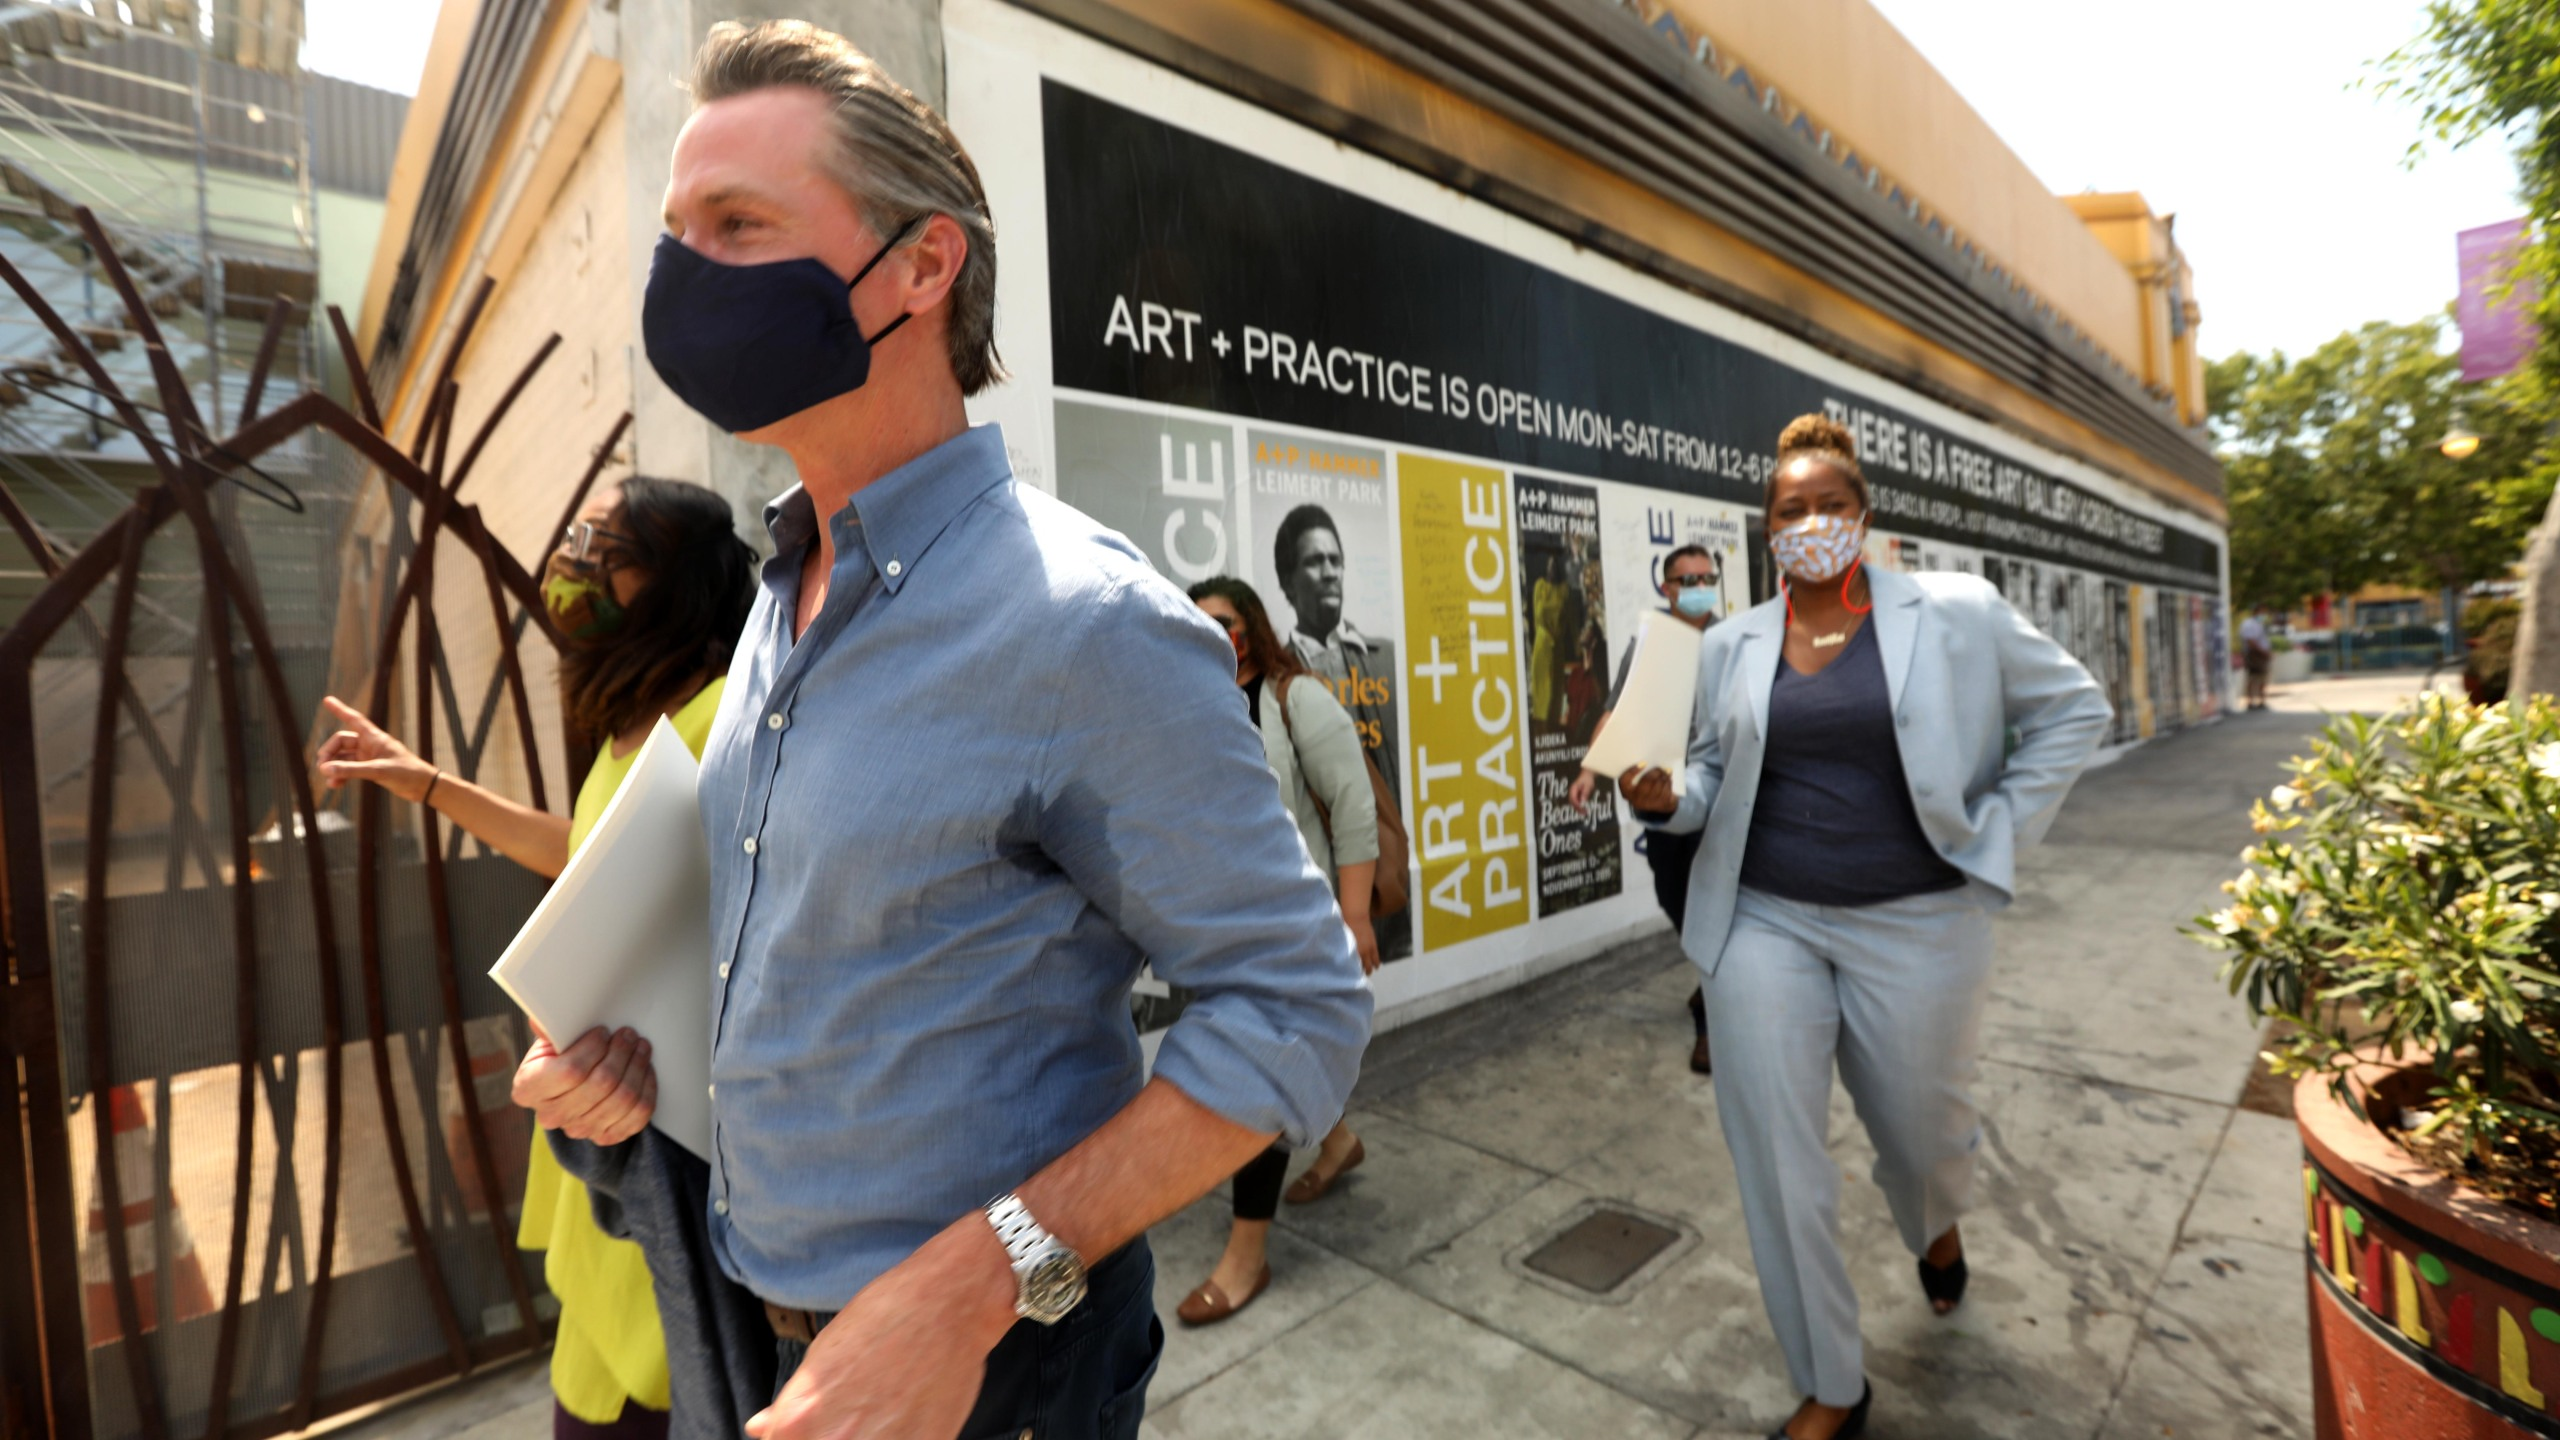 California Gov. Gavin Newsom takes a tour of businesses in Leimert Park with California Assembly Member Sydney Kamlager-Dove (L) and California Senator Holly Mitchell (R) after days of protests in Los Angeles in Leimert Park in Los Angeles on June 3, 2020, as the state opens from the coronavirus shutdown. (Genaro Molina / POOL / AFP via Getty Images)